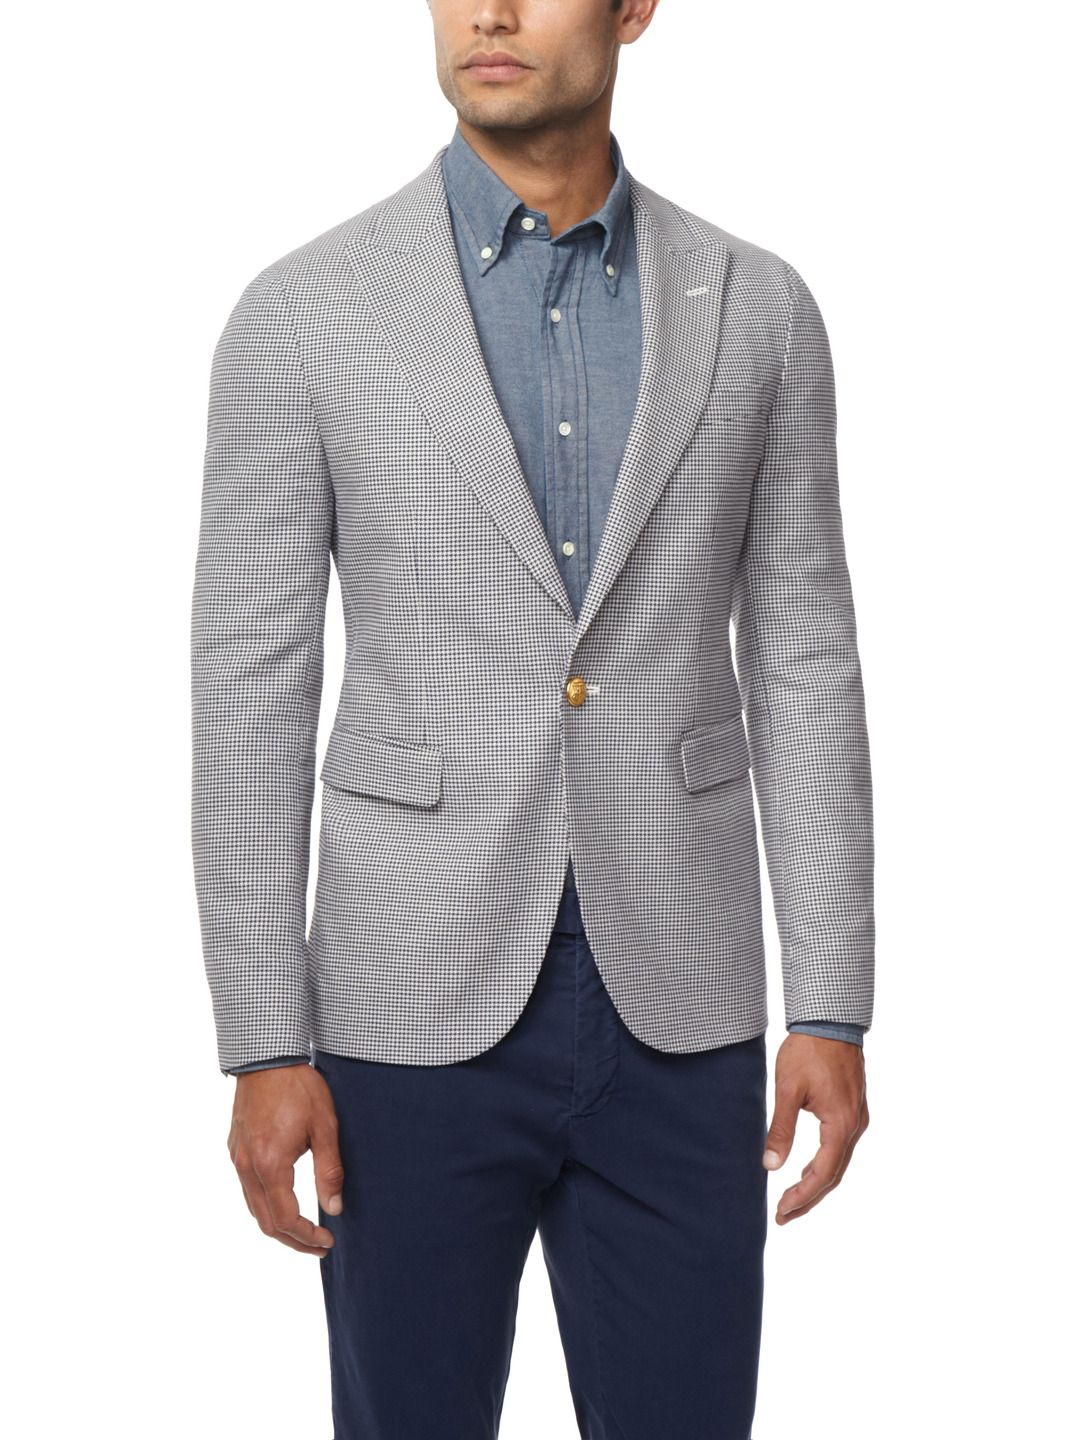 76091008a Houndstooth blazer from Gant Rugger, over at Park & Bond. I really ...